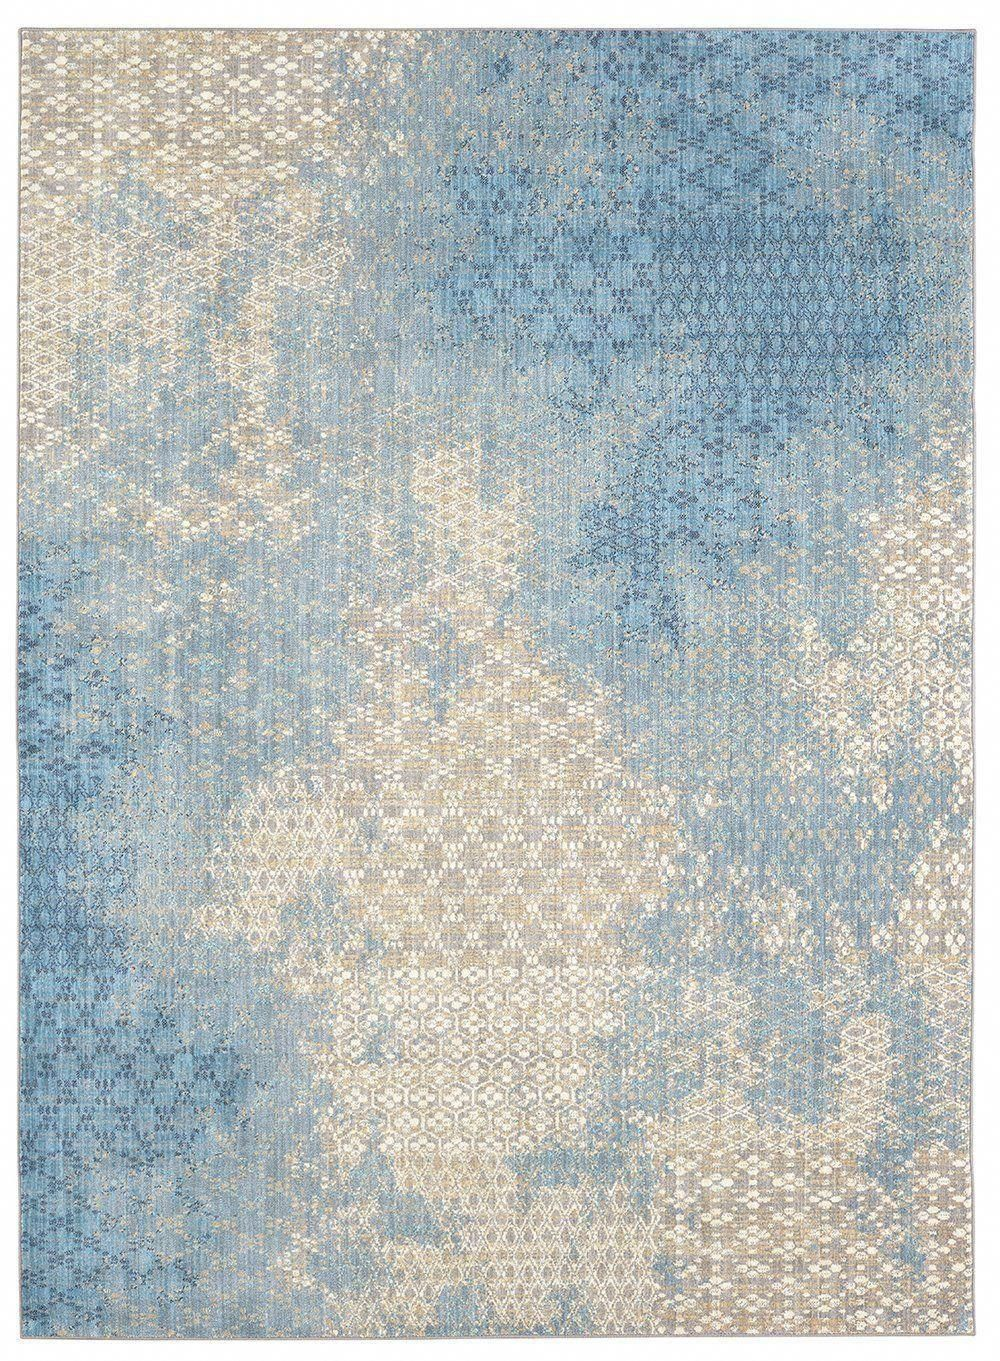 Made To Order Carpet Runners Carpetrunnersbythefoot Post 6437304823 In 2020 Rugs On Carpet Textured Carpet Patterned Carpet